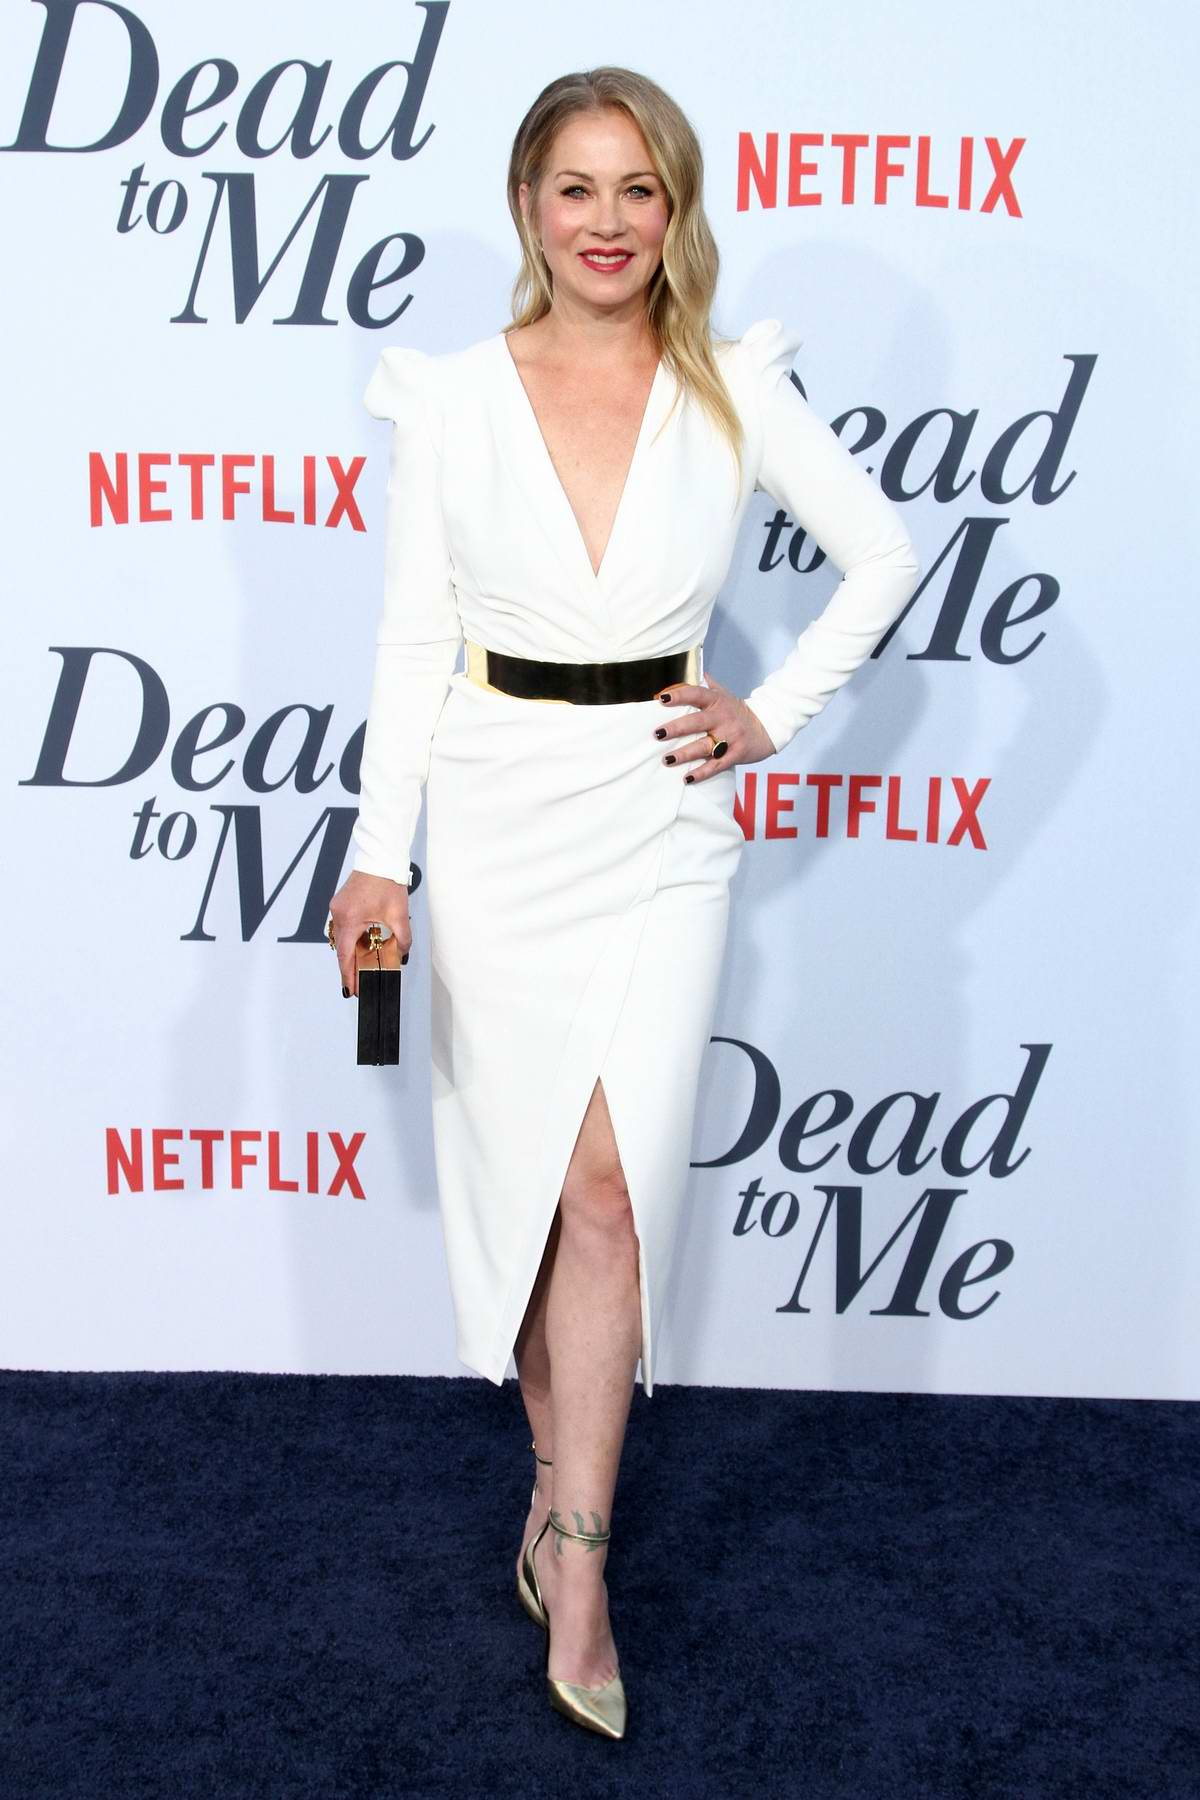 Christina Applegate attends 'Dead To Me' TV Show Premiere in Los Angeles